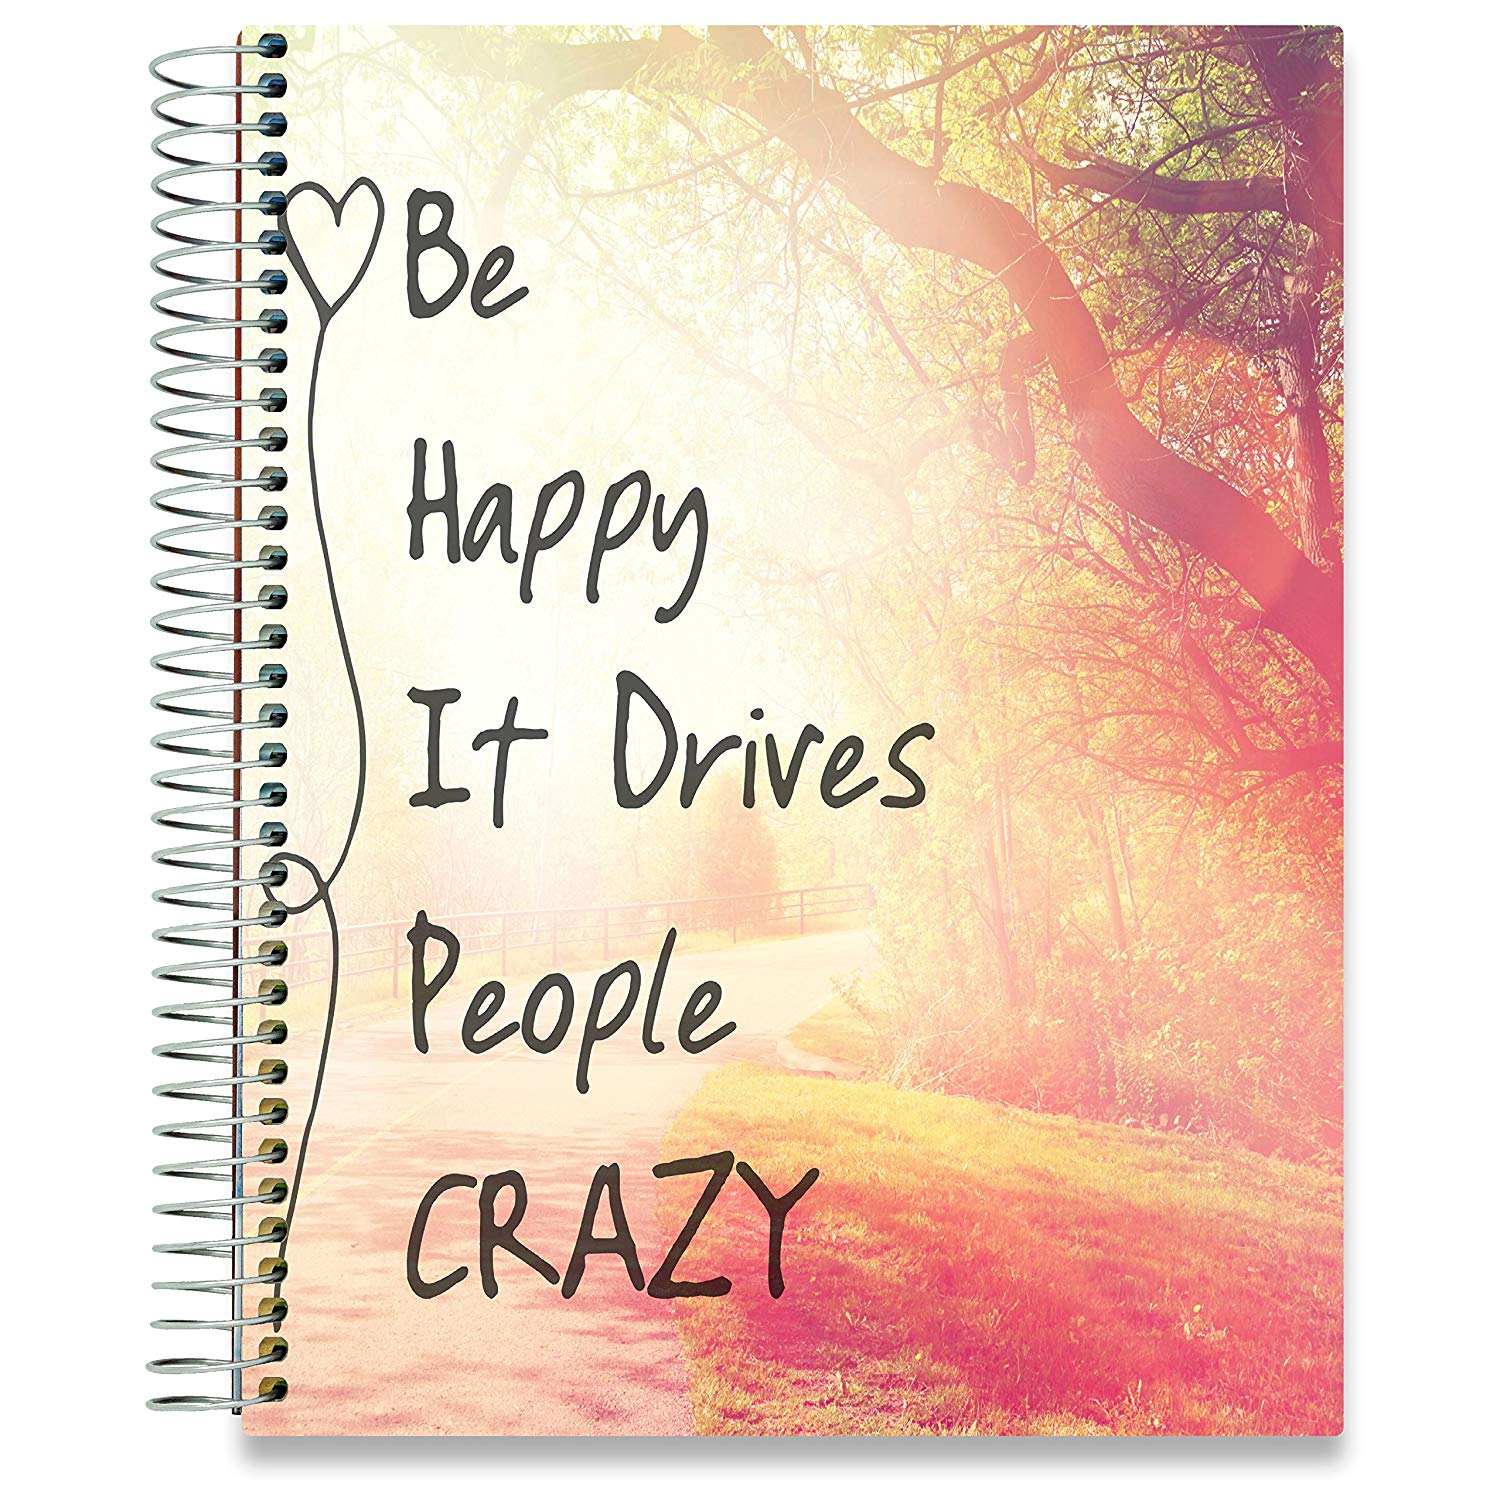 NEW: April 2020-2021 Planner - 8.5x11 - Be Happy-Office Product-Tools4Wisdom